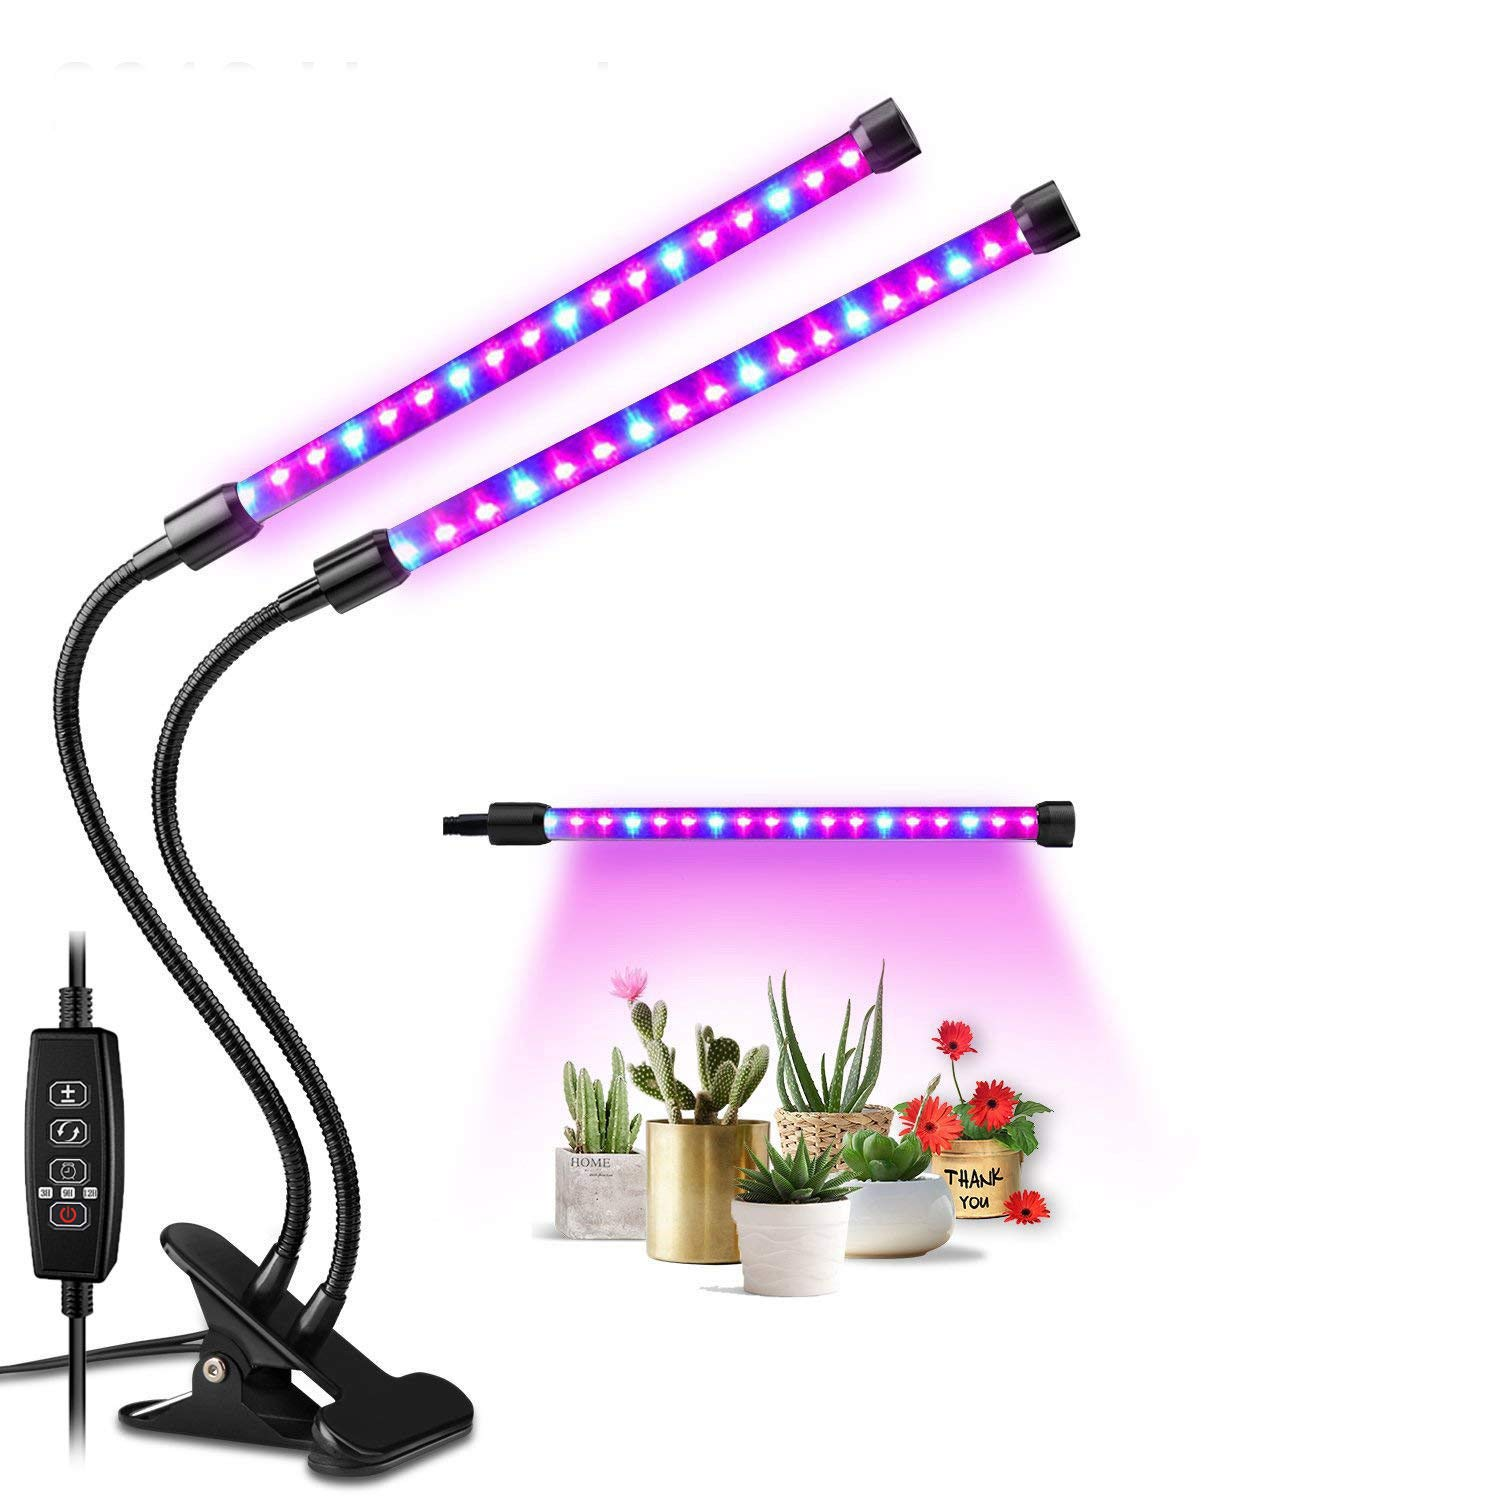 DISTIll Upgraded 18W Dual Head Timing Plant Grow Light 36 LED 5 Dimmable Levels LED Plant Grow Lamp with Red Blue Spectrum, 360 Flexible Adjustable Gooseneck for Indoor Plants Hydroponics Greenhouse